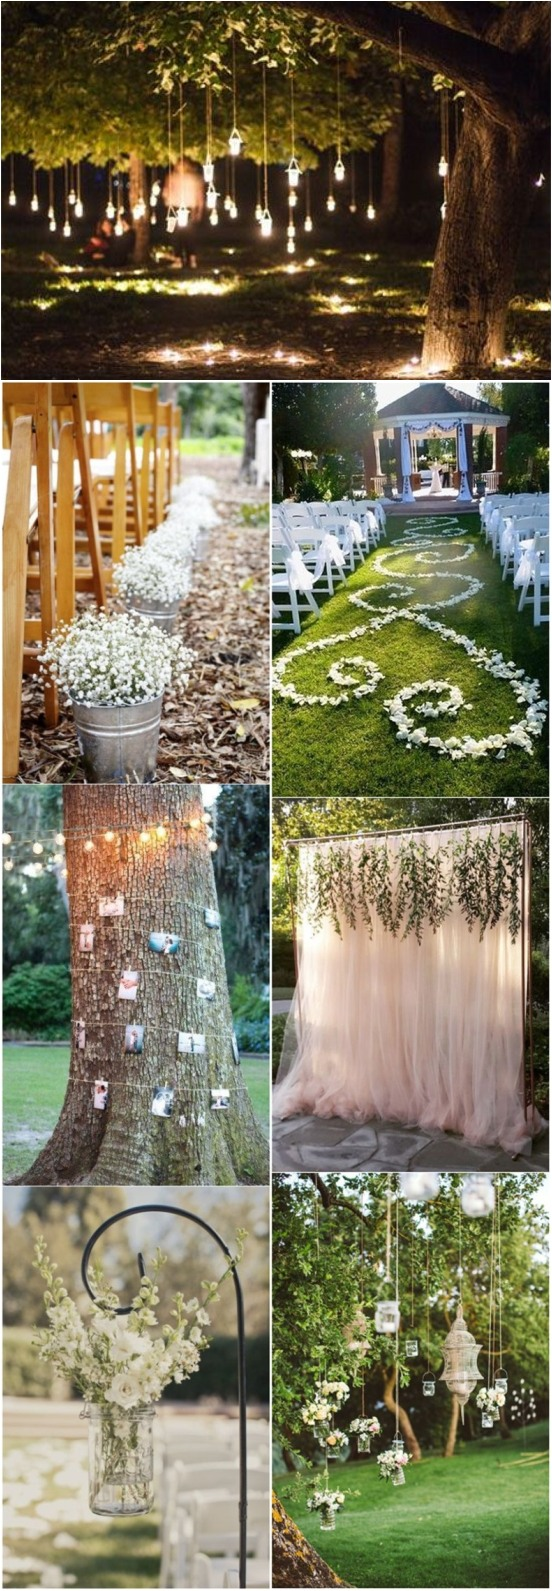 20+ Genius Outdoor Wedding Ideas